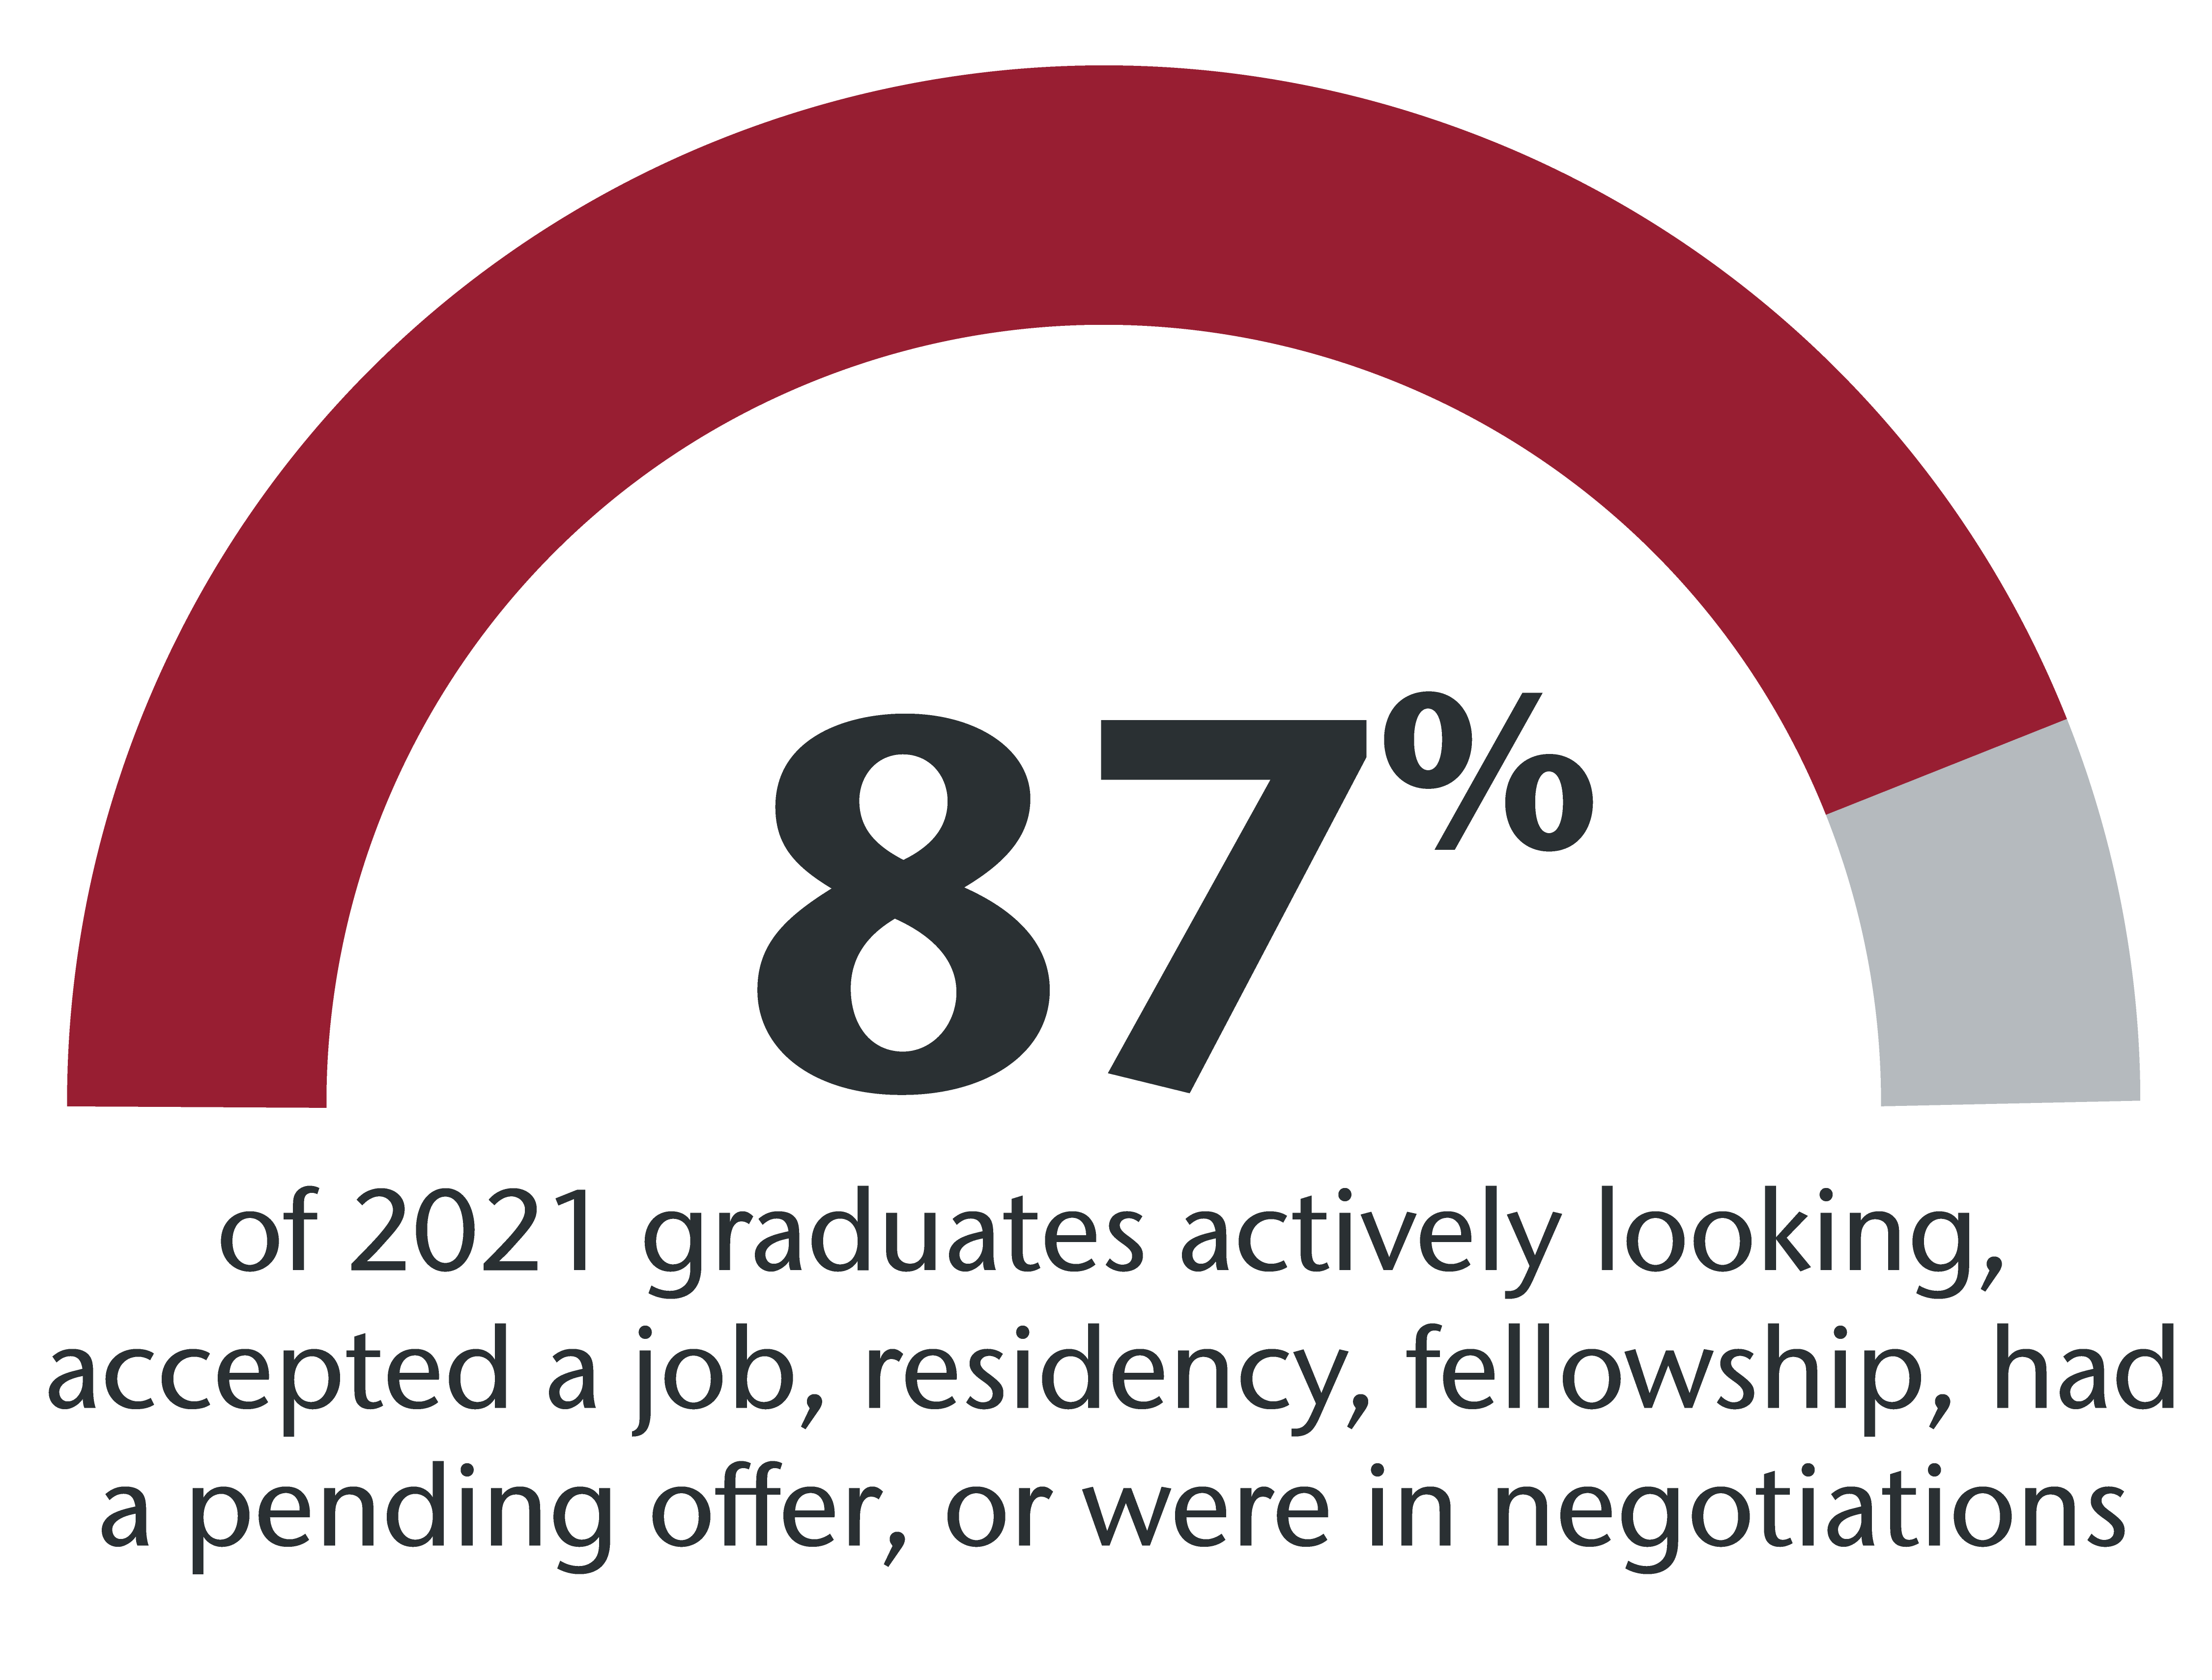 87% of 2021 graduates actively looking, accepted a job, residency, fellowship, had a pending offer, or were in negotiations.